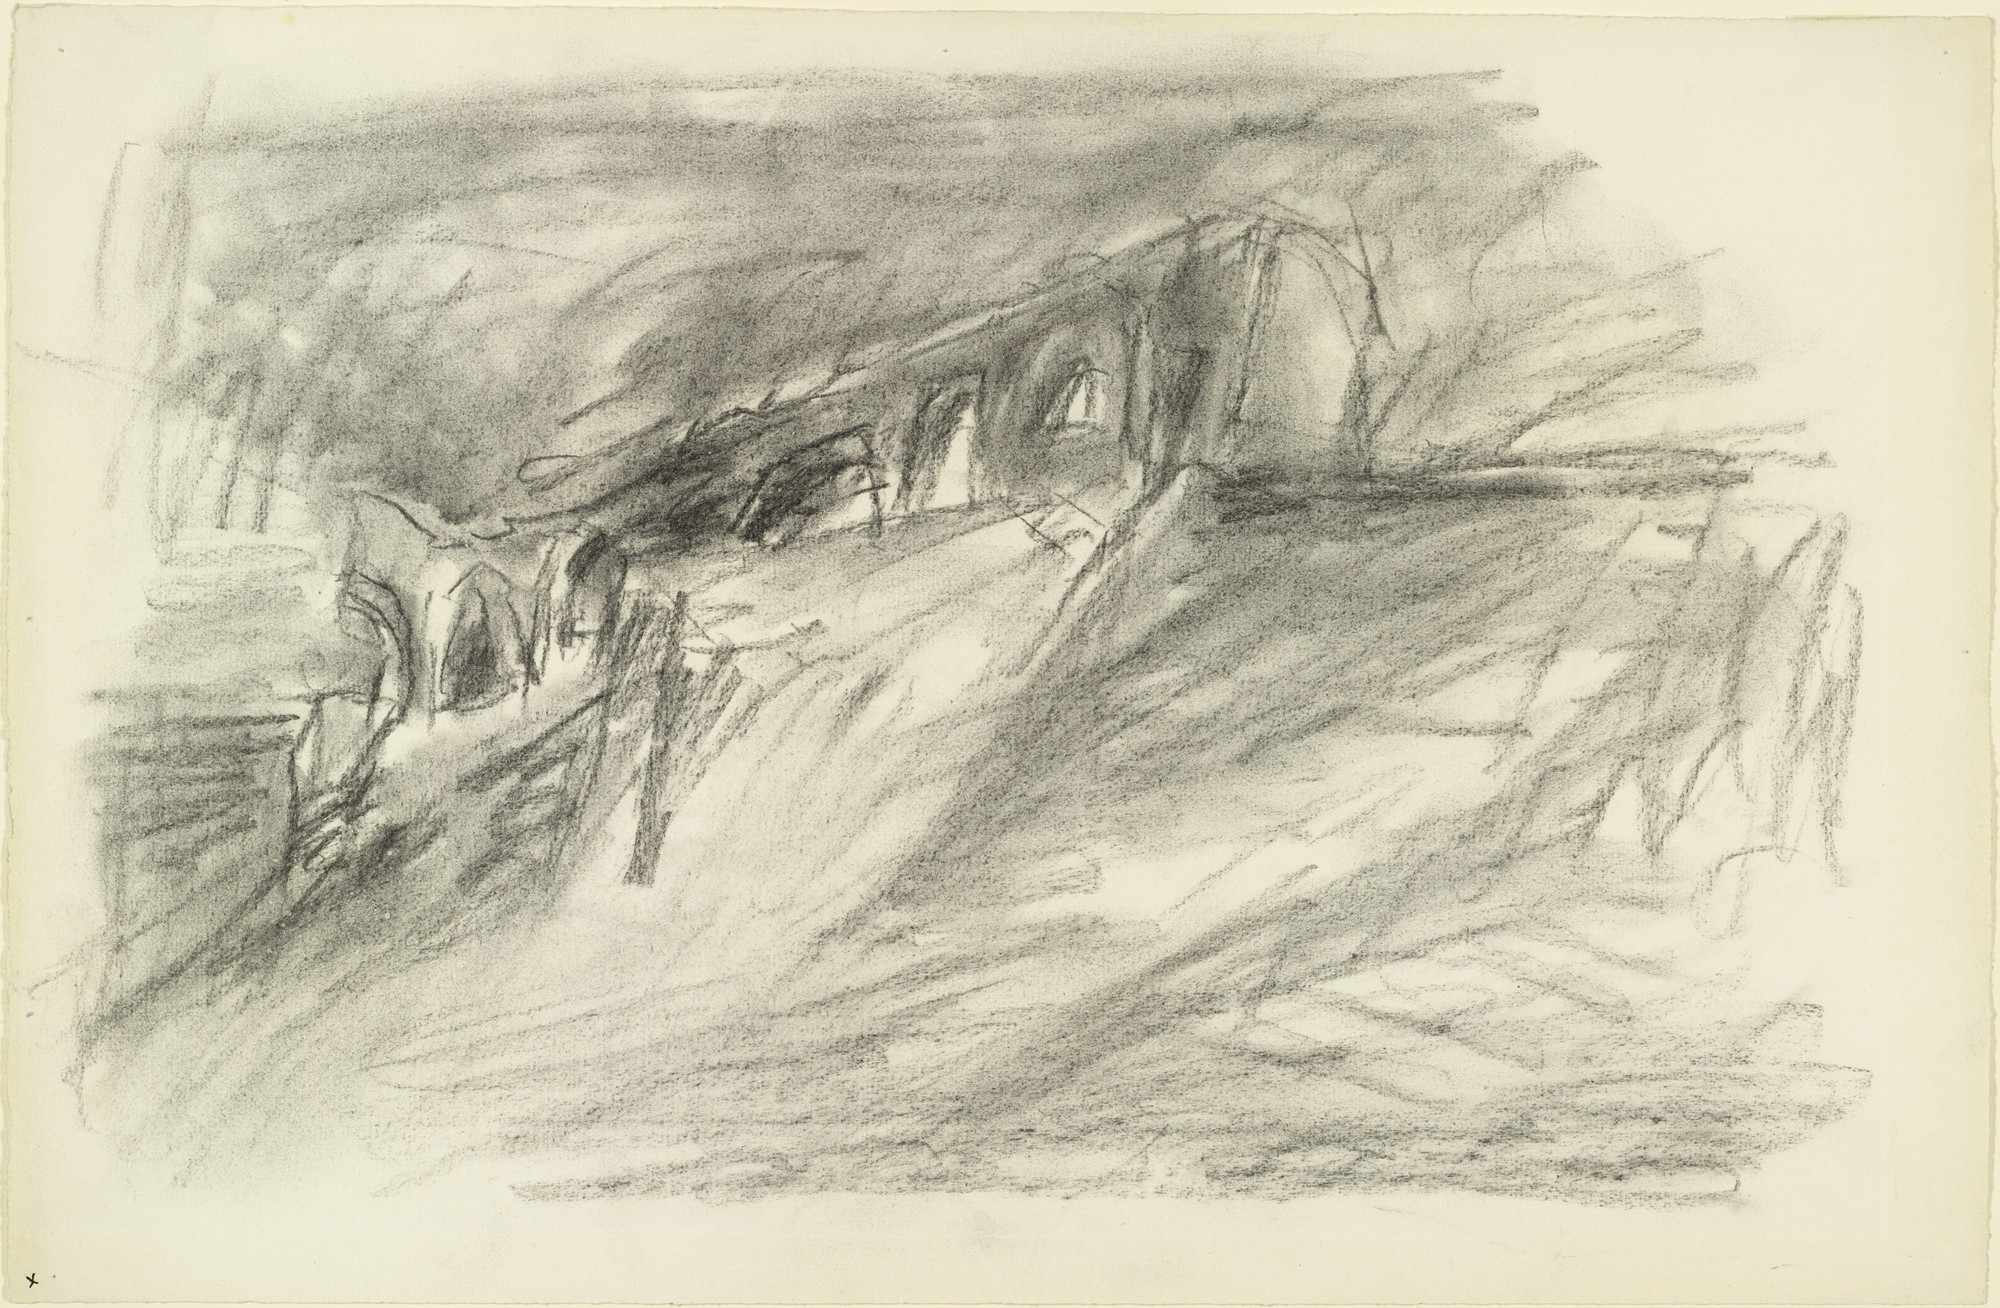 Lyonel Feininger. Ruin on the Cliff. (1935)